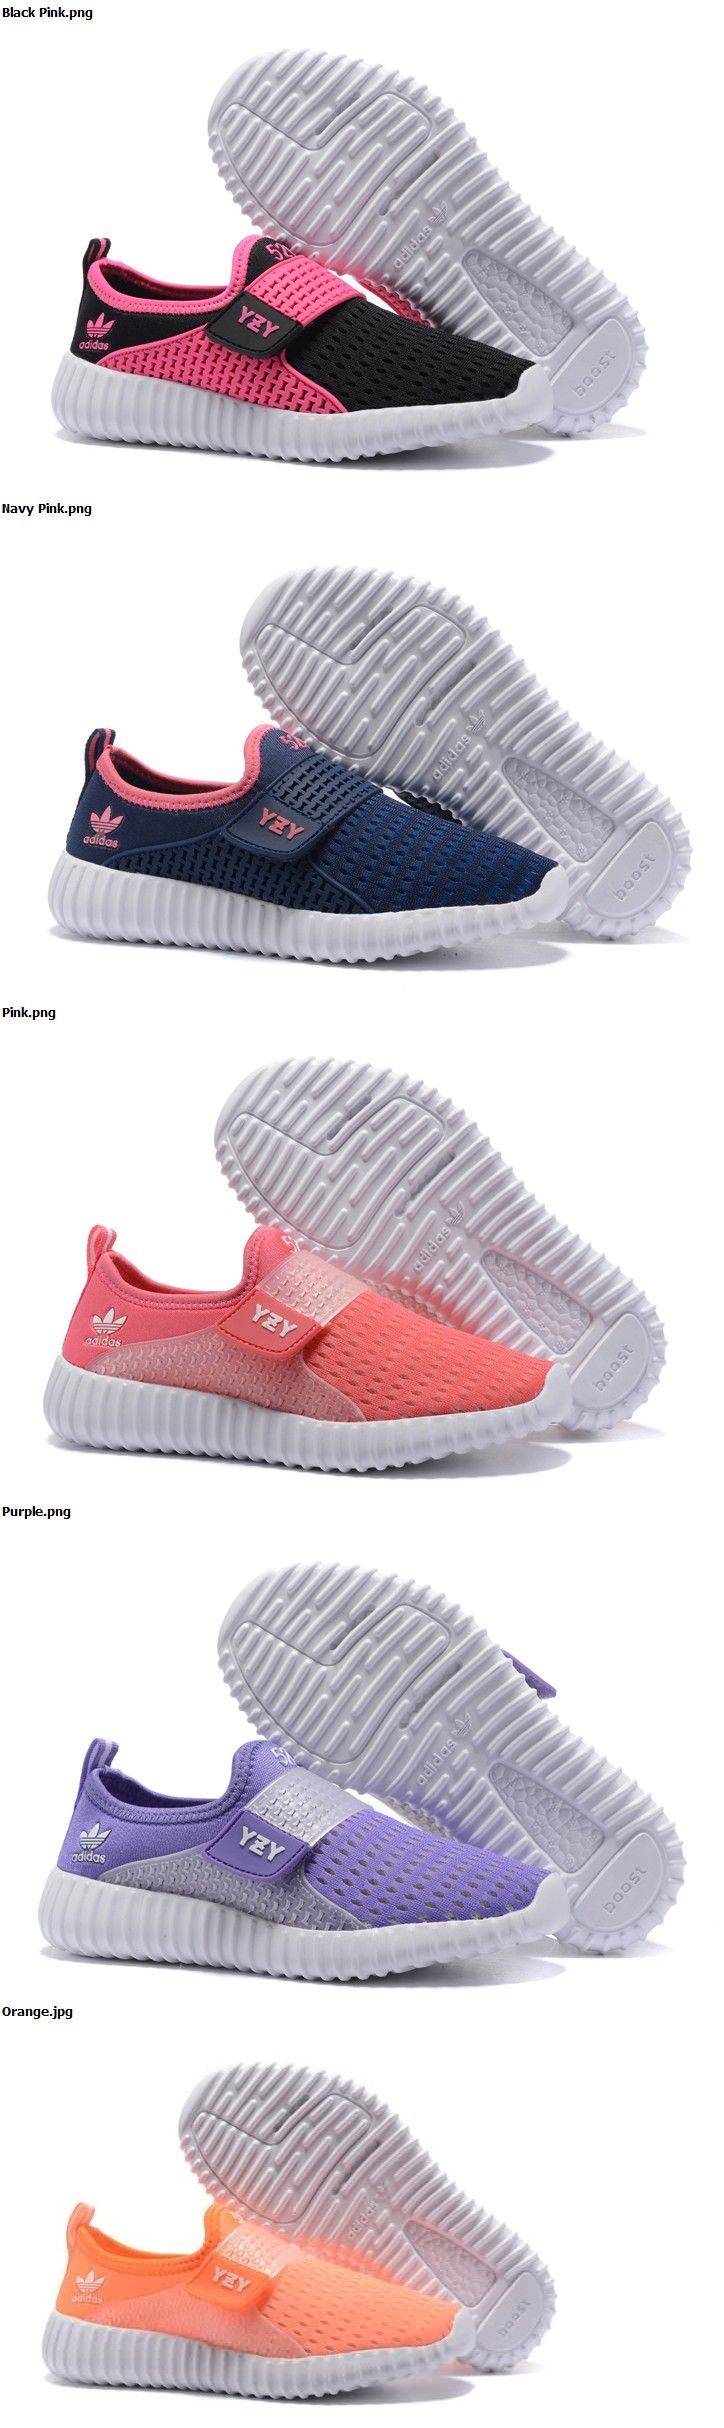 Adidas Yeezy Boost 520 Women Free Shipping